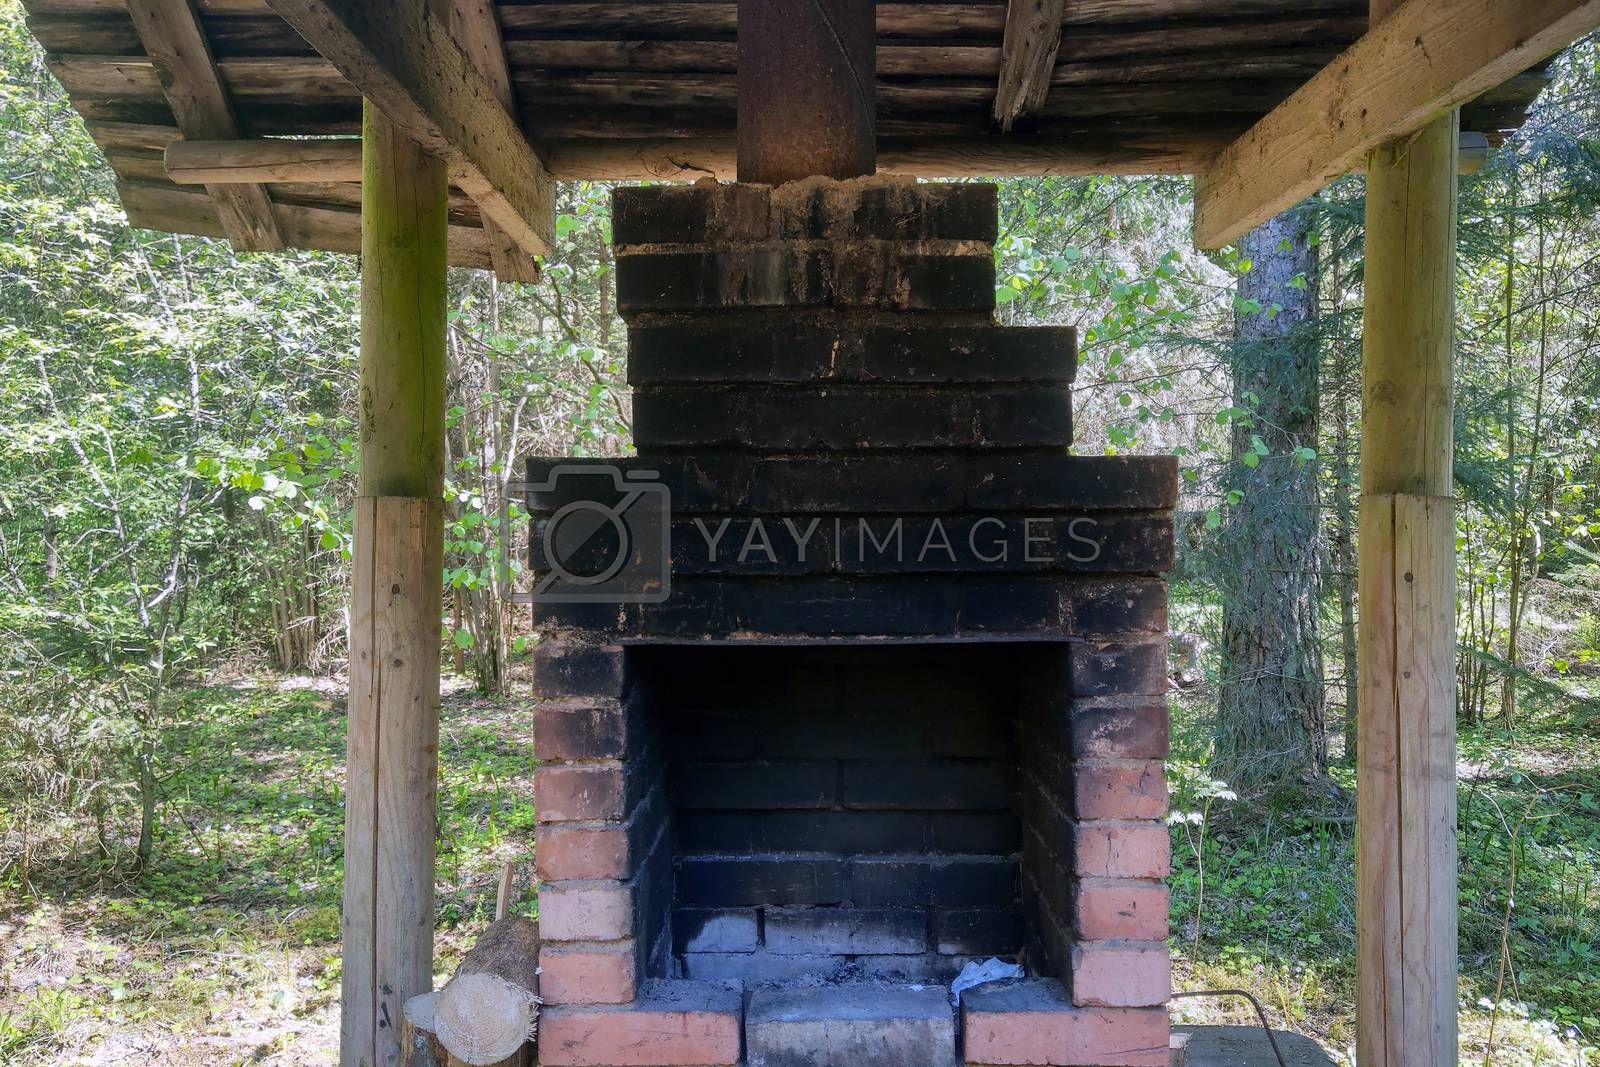 Small oven outside under a canopy for cooking